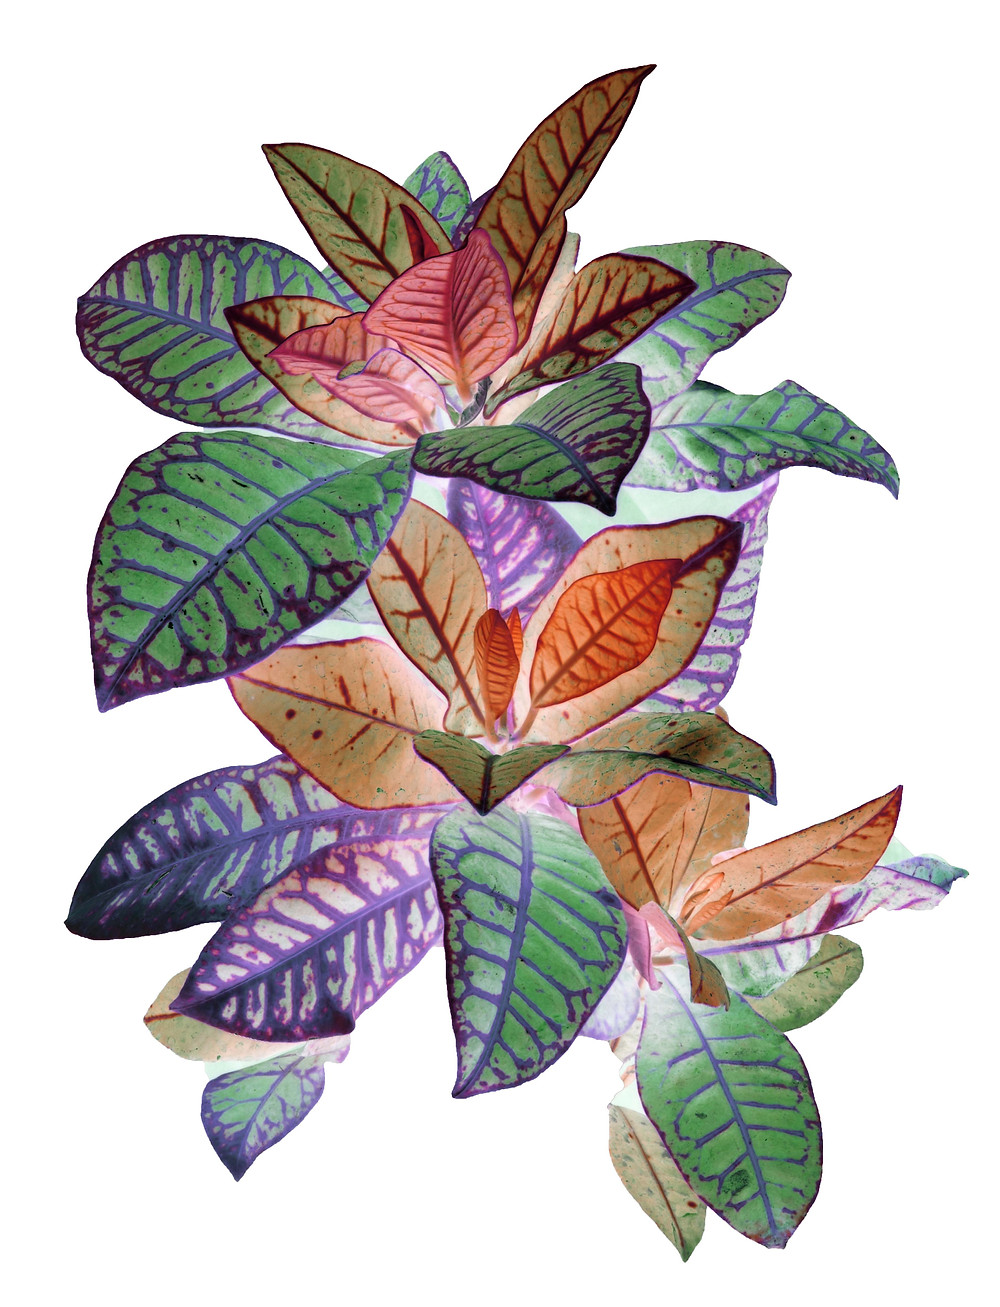 Heavenly plants  Heavenly plants is a photographic series inspired from the botanical beauty. The images have been digitally manipulated to achieve the vibrancy and vividness of colours of nature the artist perceives it to be